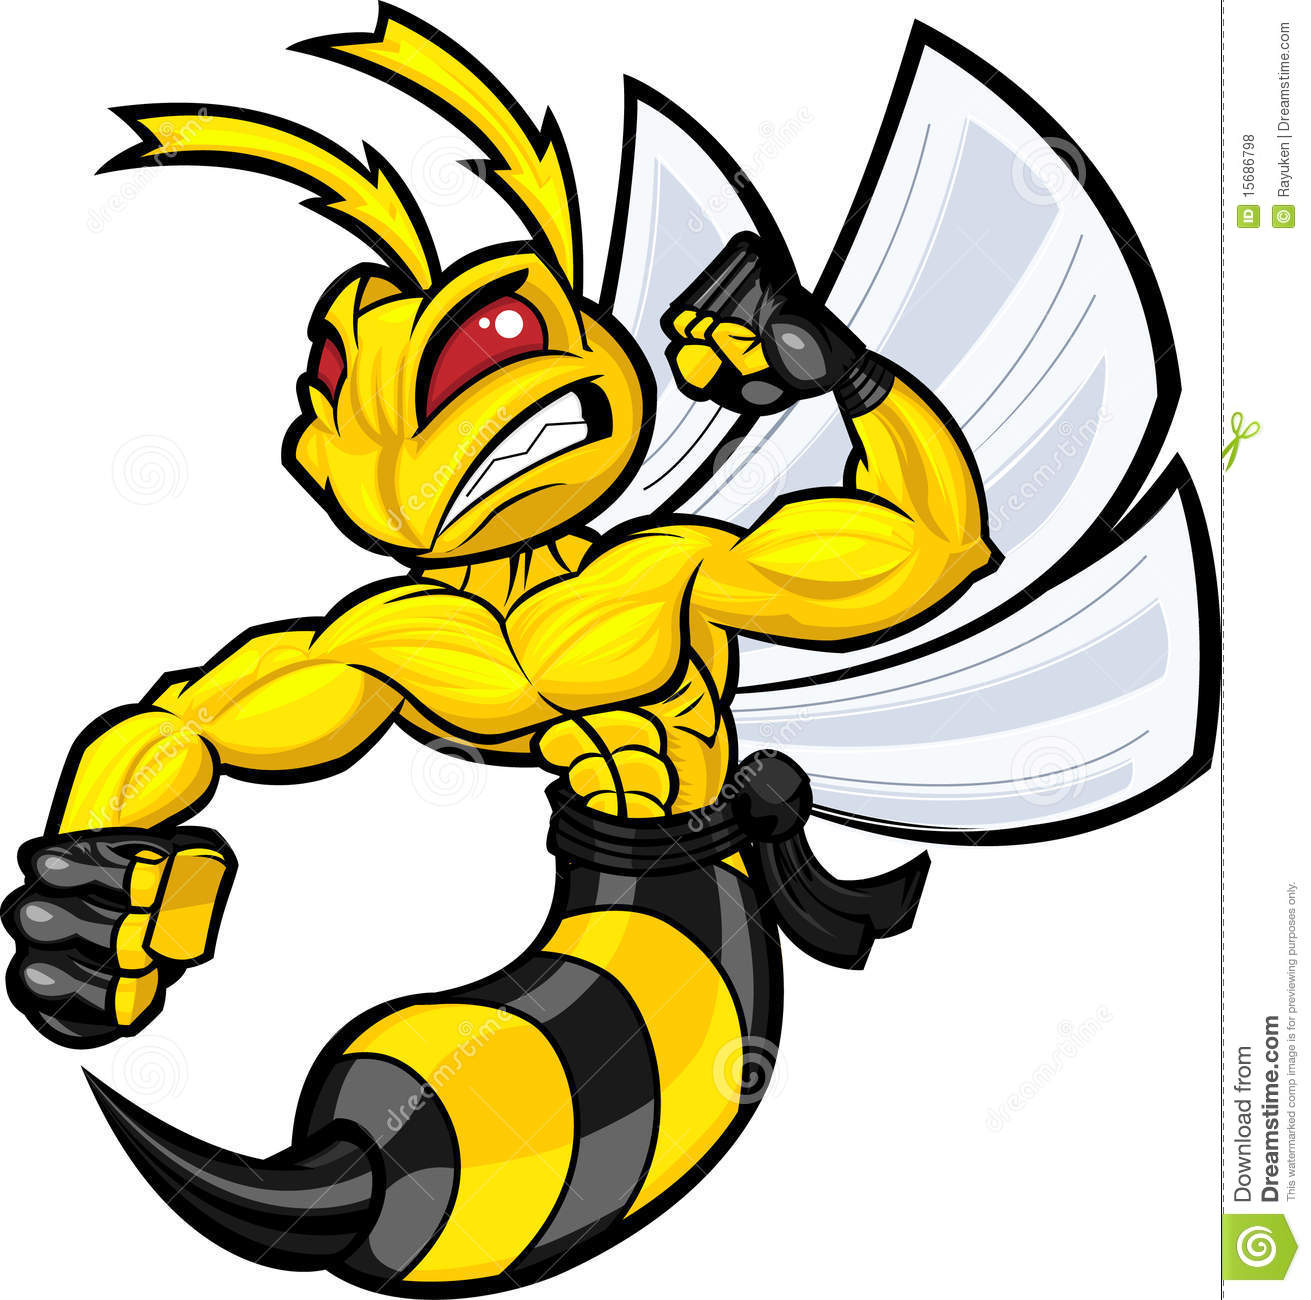 Fighting Hornet Royalty Free Stock Photos Image 15686798